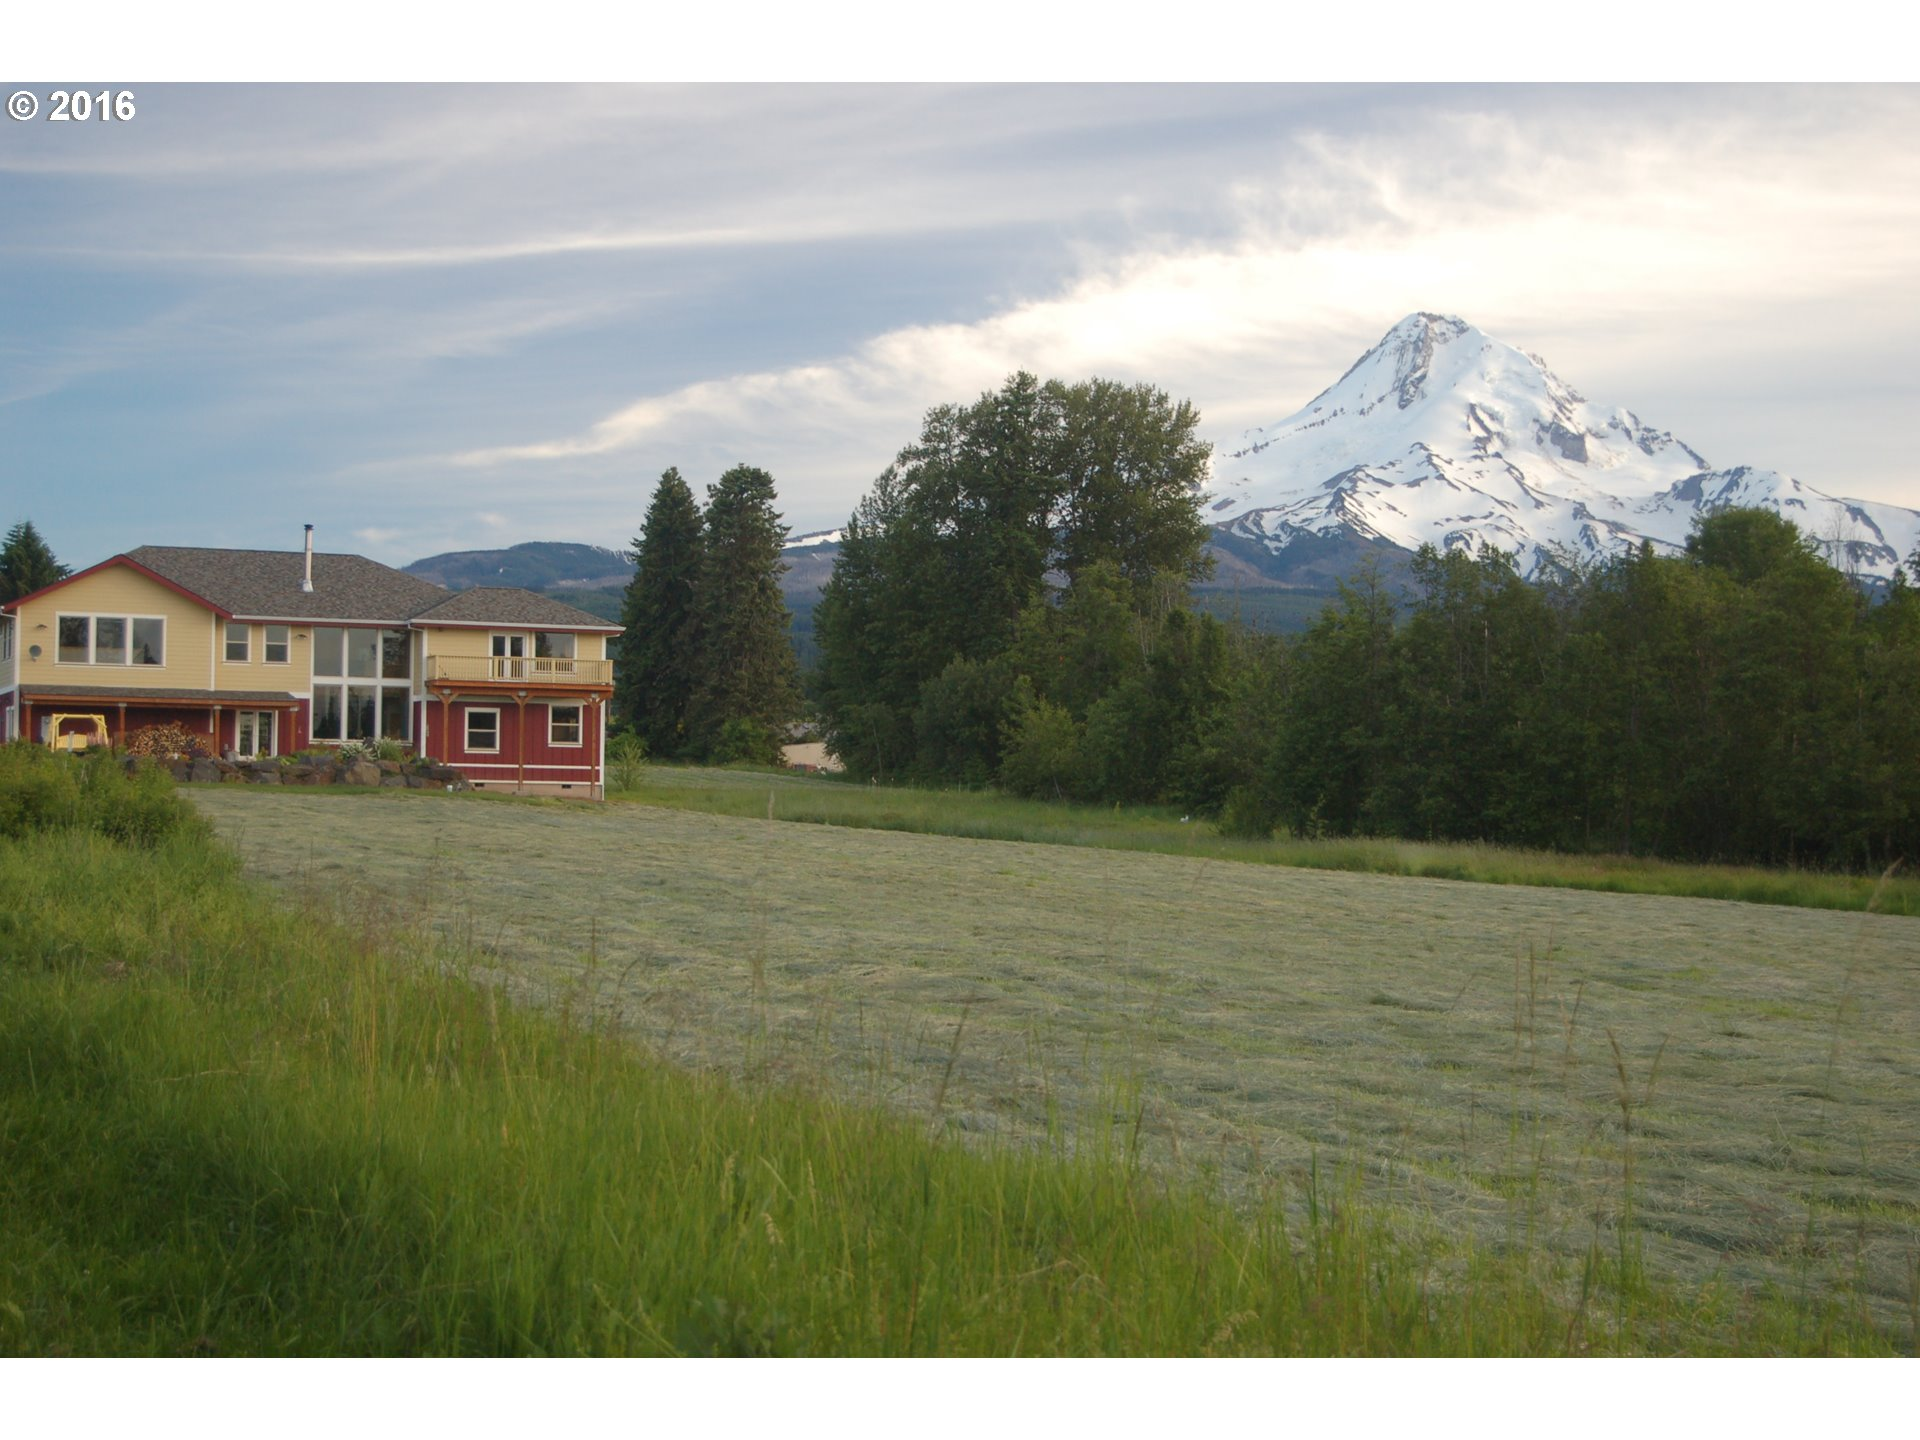 mount hood parkdale latin singles 2 bed, 2 bath, 1907 sq ft mobile/manufactured home located at 5794 billings rd, mt hood prkdl, or 97041 sold for $218,000 on.